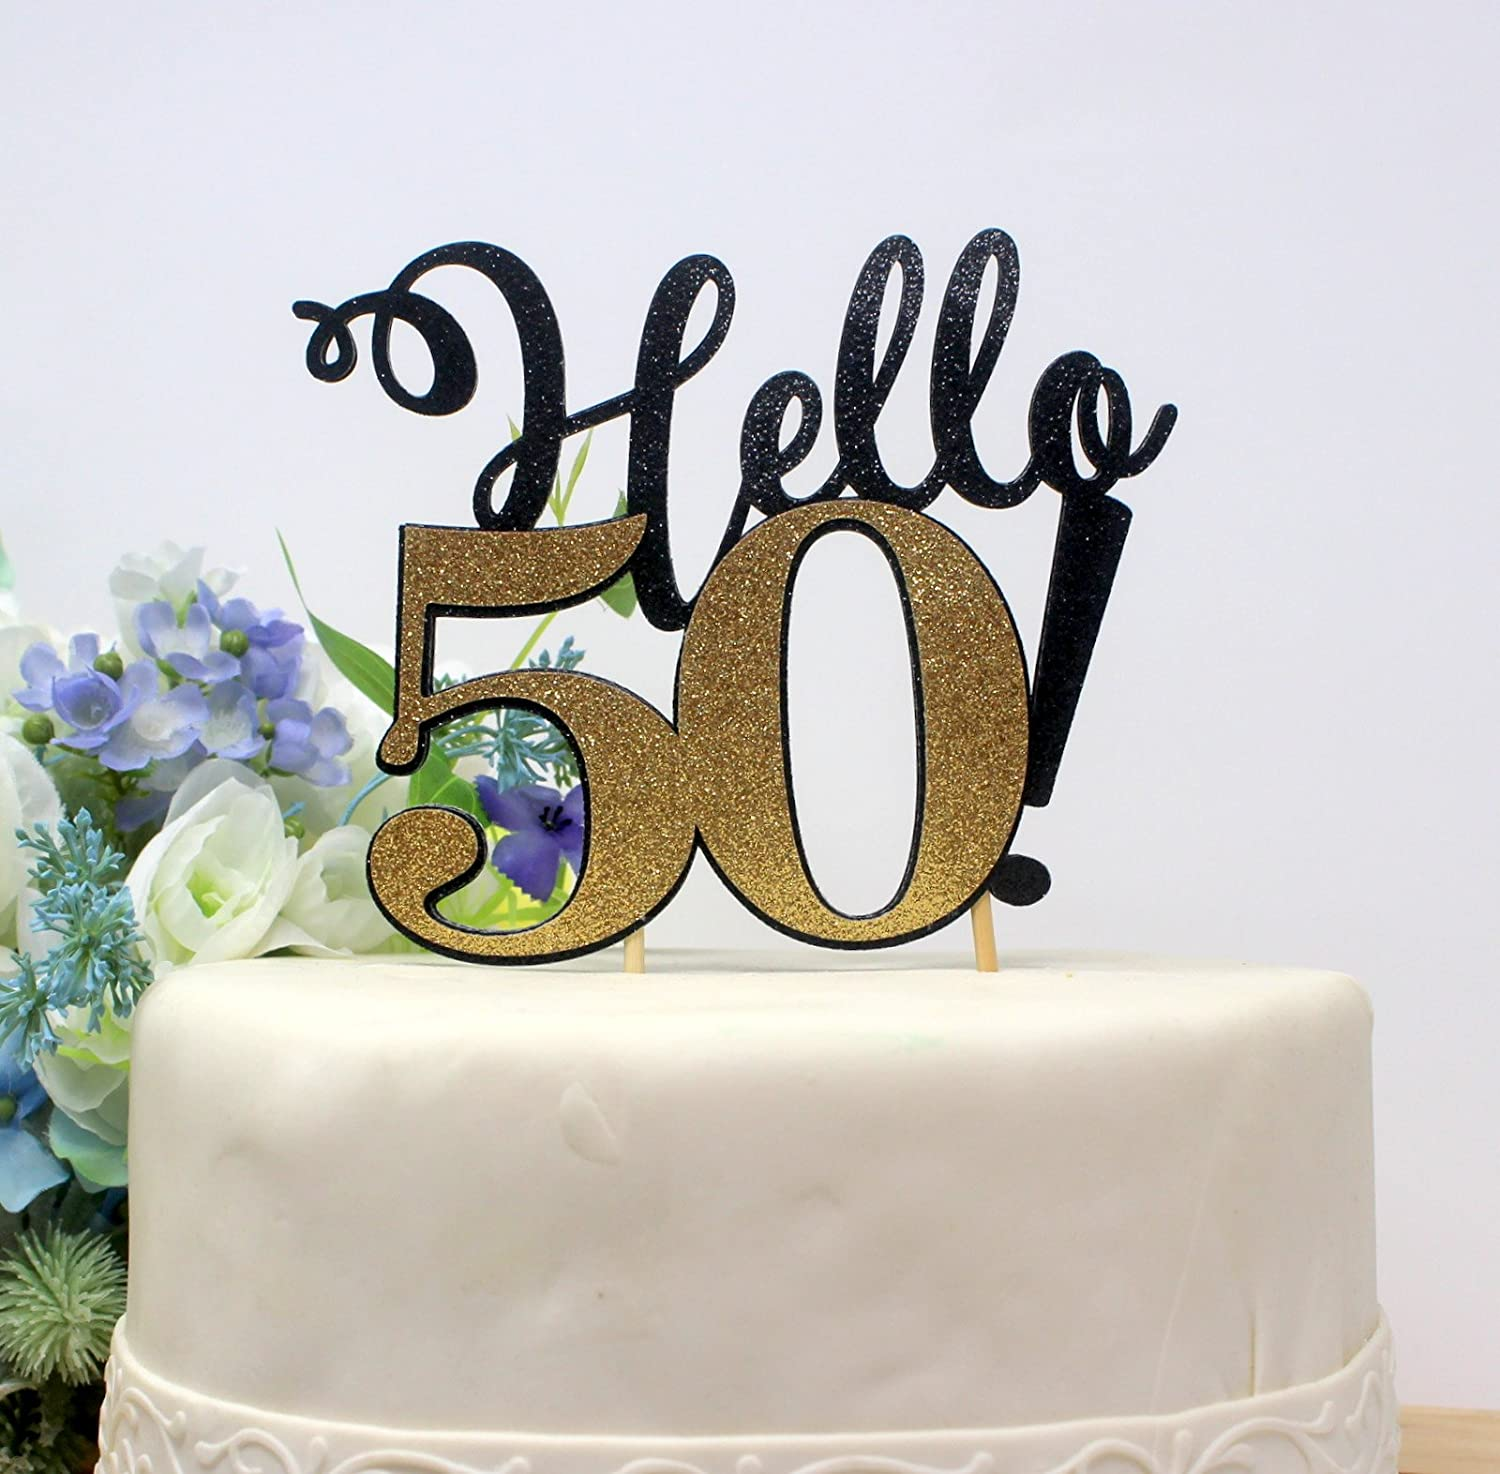 Amazon All About Details Hello 50 Cake Topper1pc 50th Birthday Decoration Party Decor Glitter Topper Black Gold Kitchen Dining